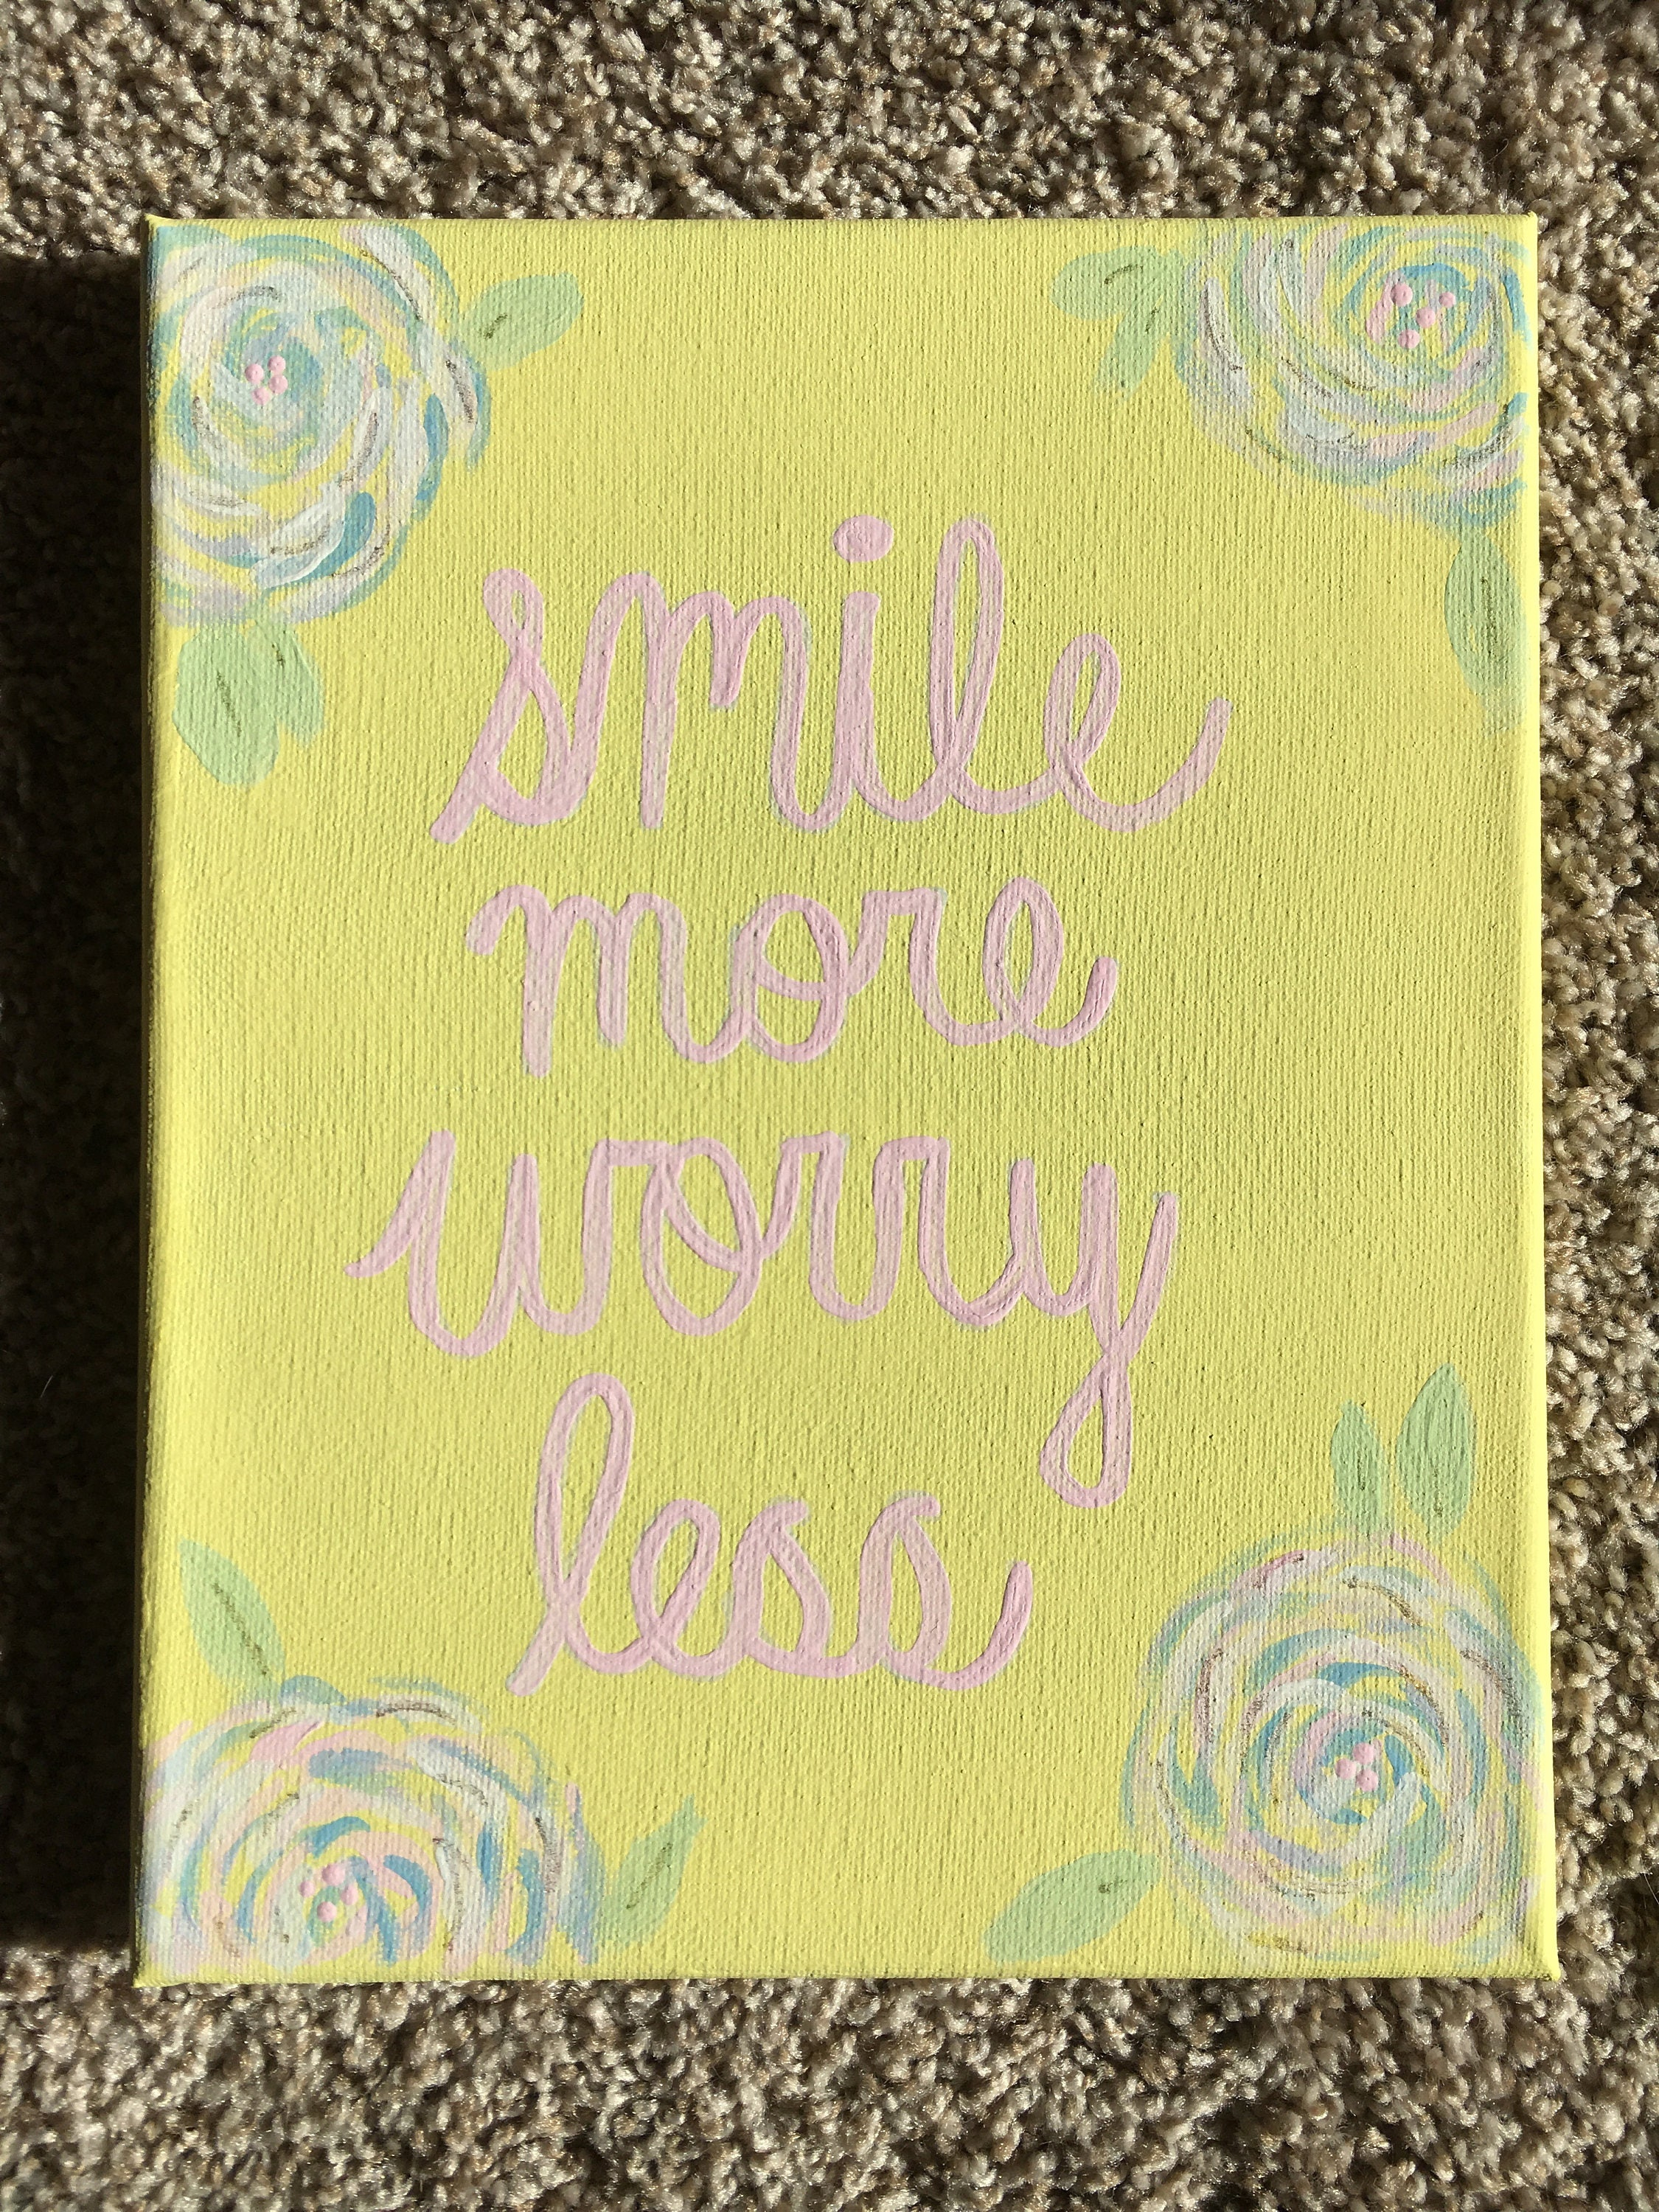 Smile More Worry Less Canvas // Quote // Pastel // Floral //